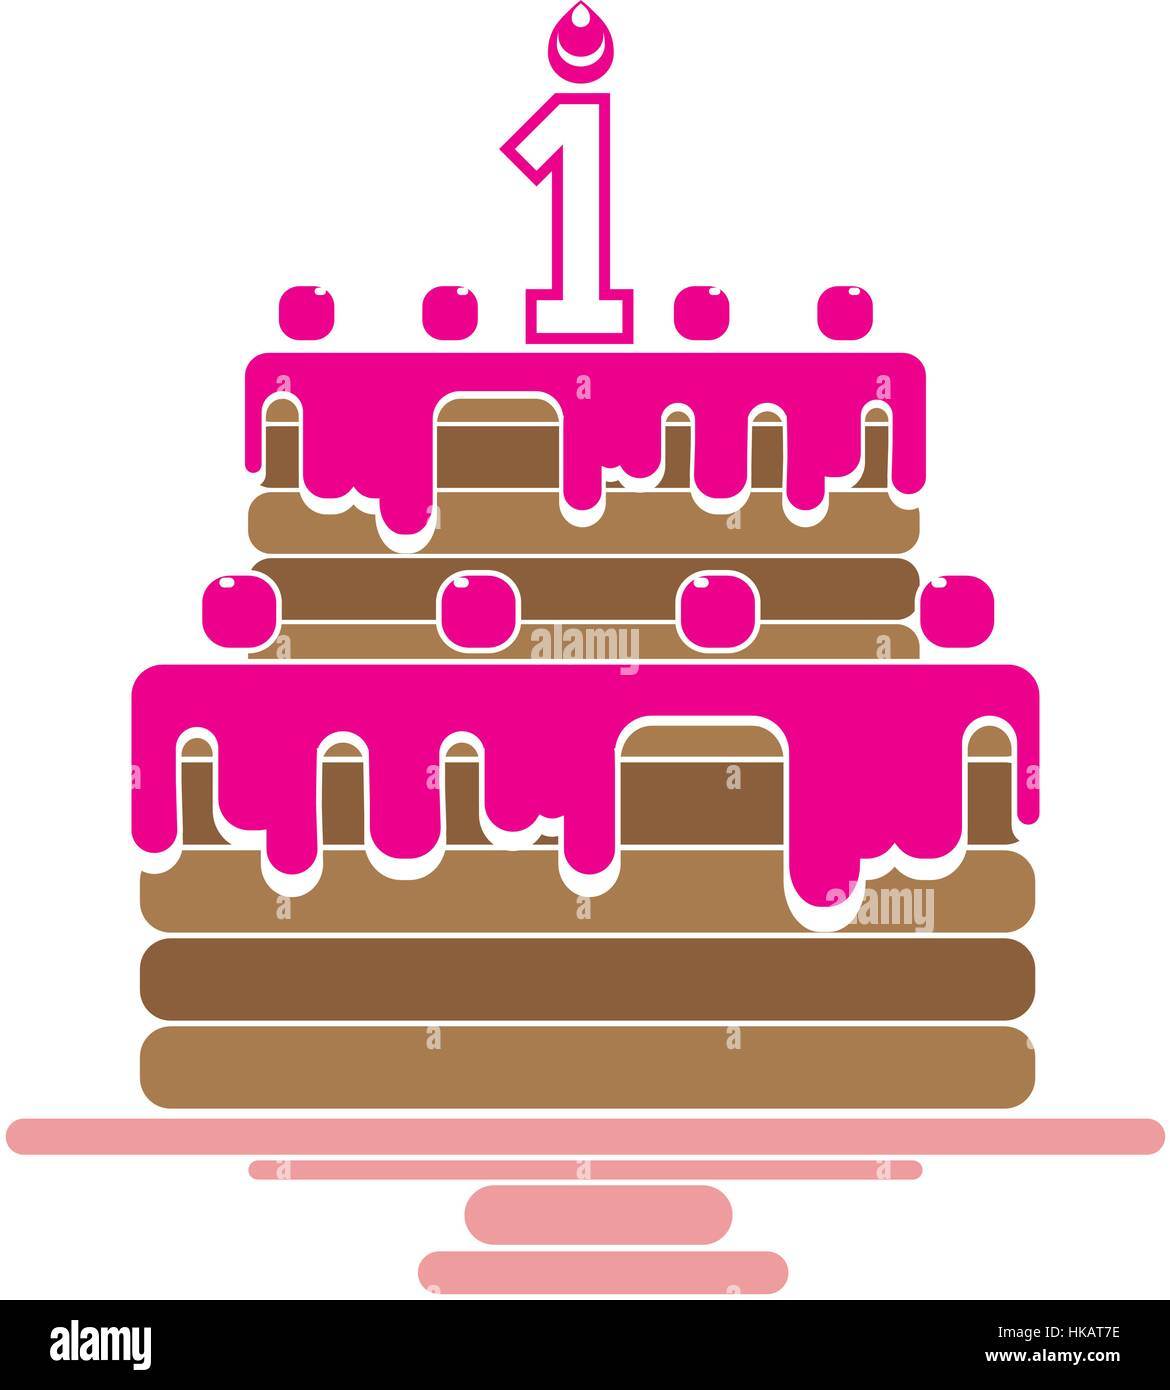 The birthday cake with candles in the form of number 1 icon the birthday cake with candles in the form of number 1 icon birthday symbol flat vector illustration button buycottarizona